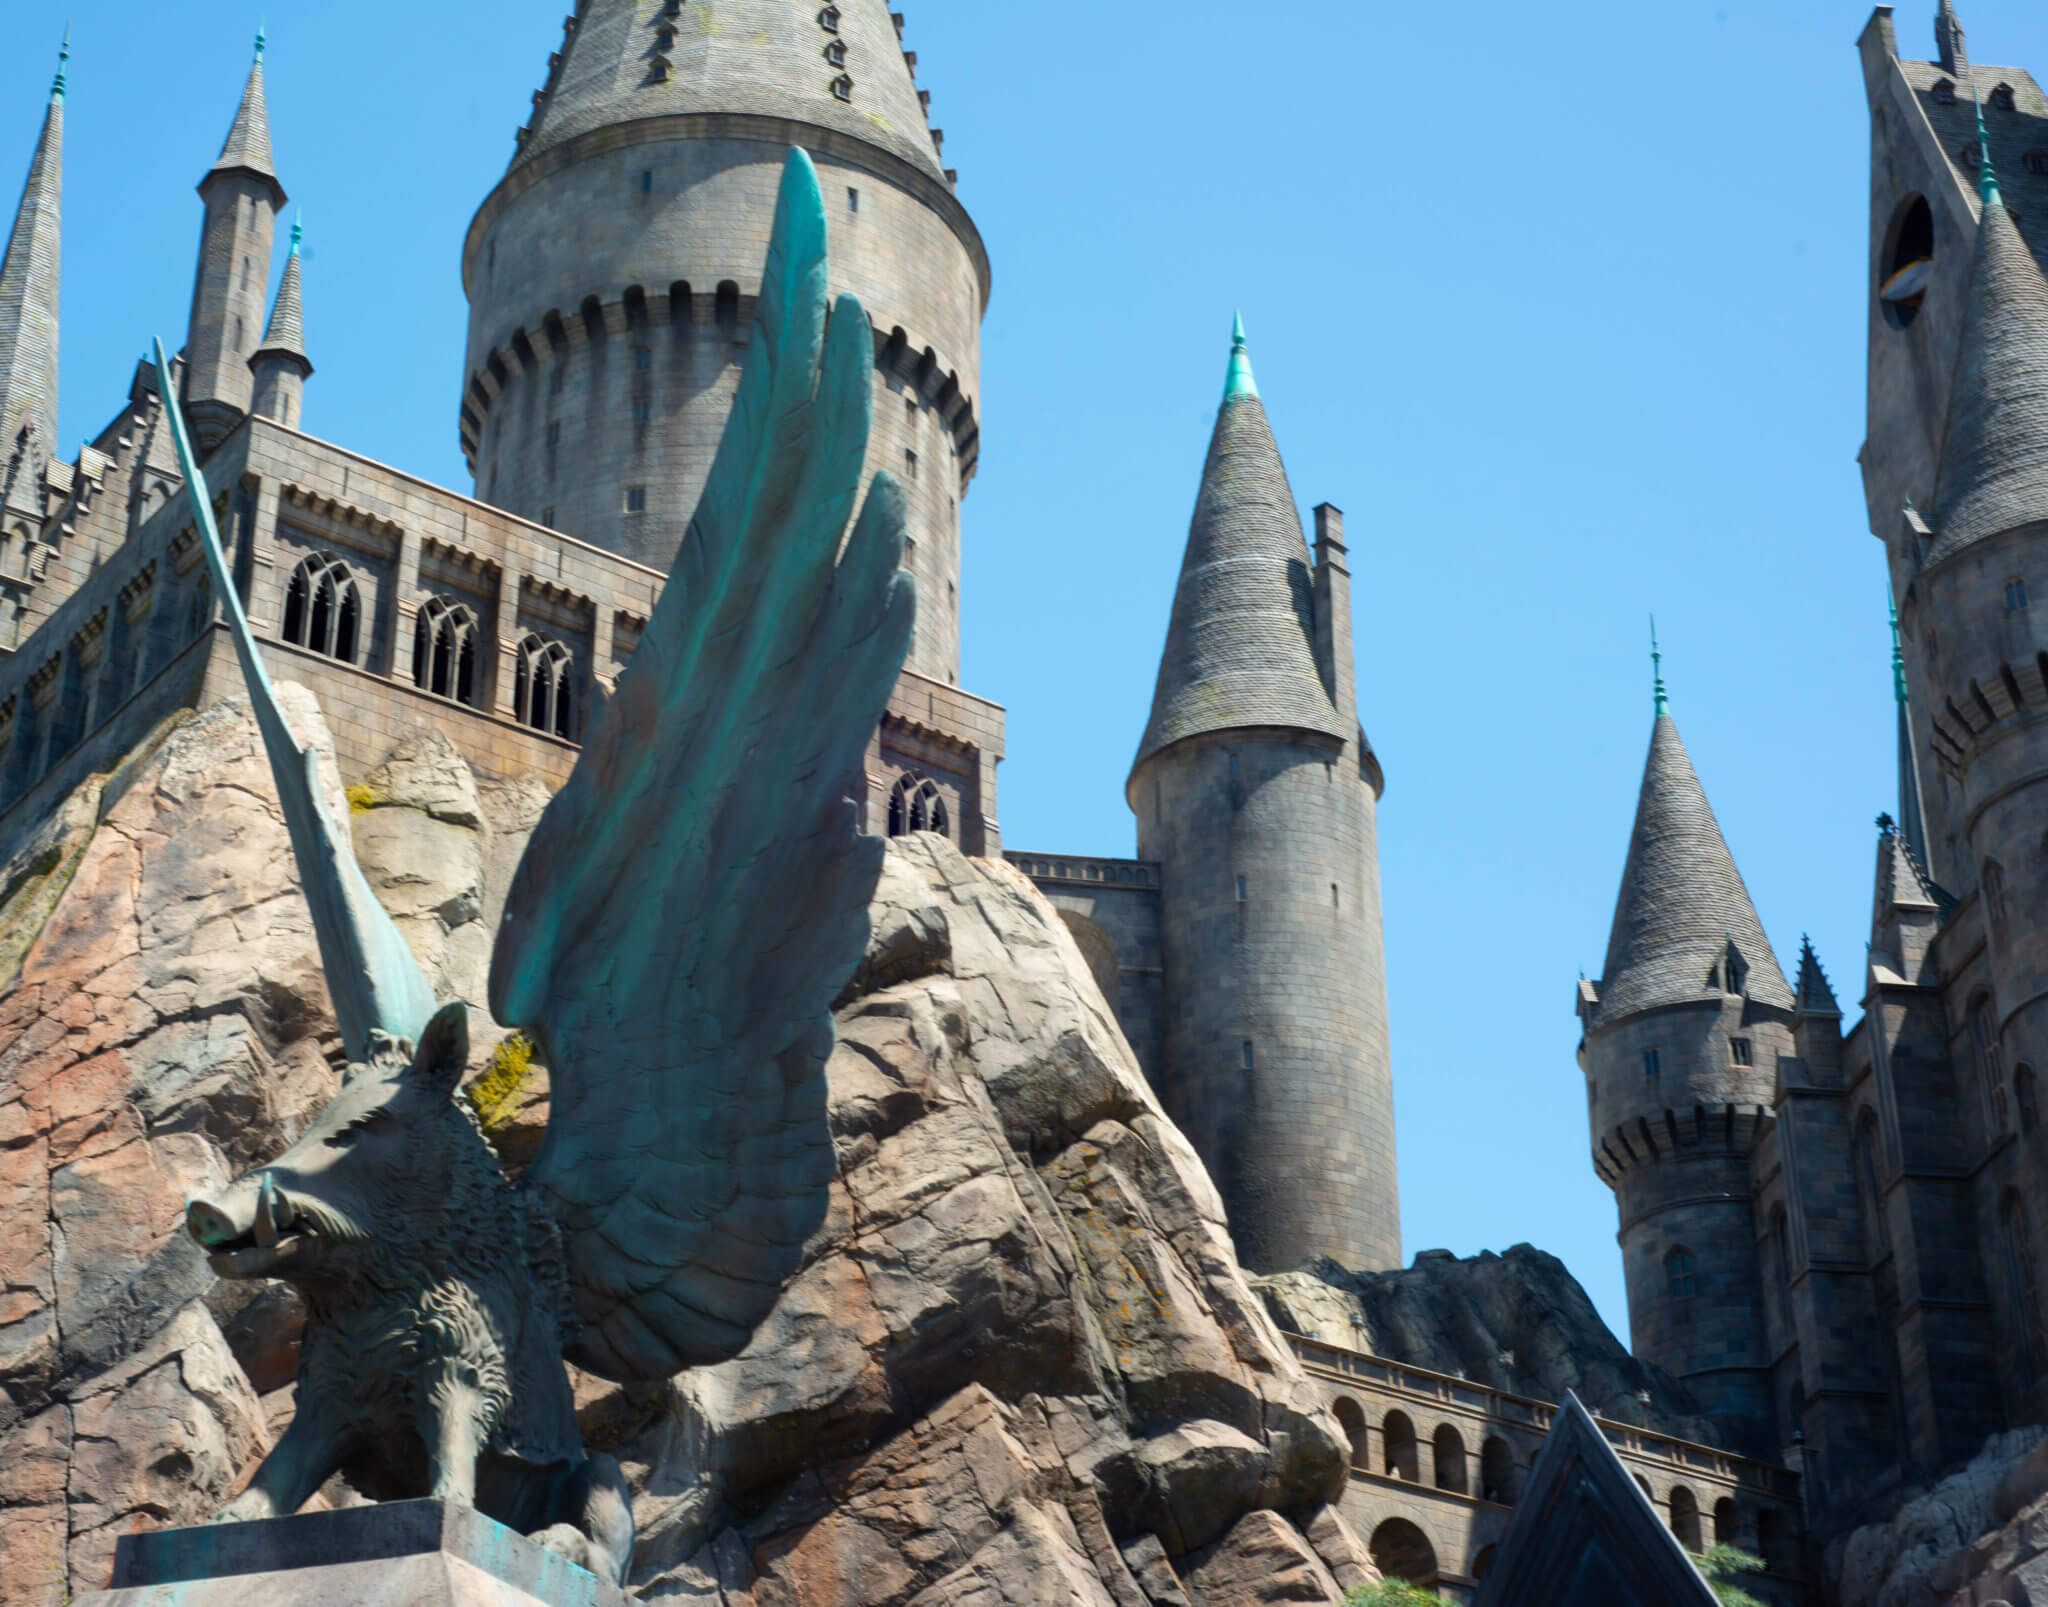 Hog with with wings statue in front of Hogwarts Castle at Universal Studios Hollywood